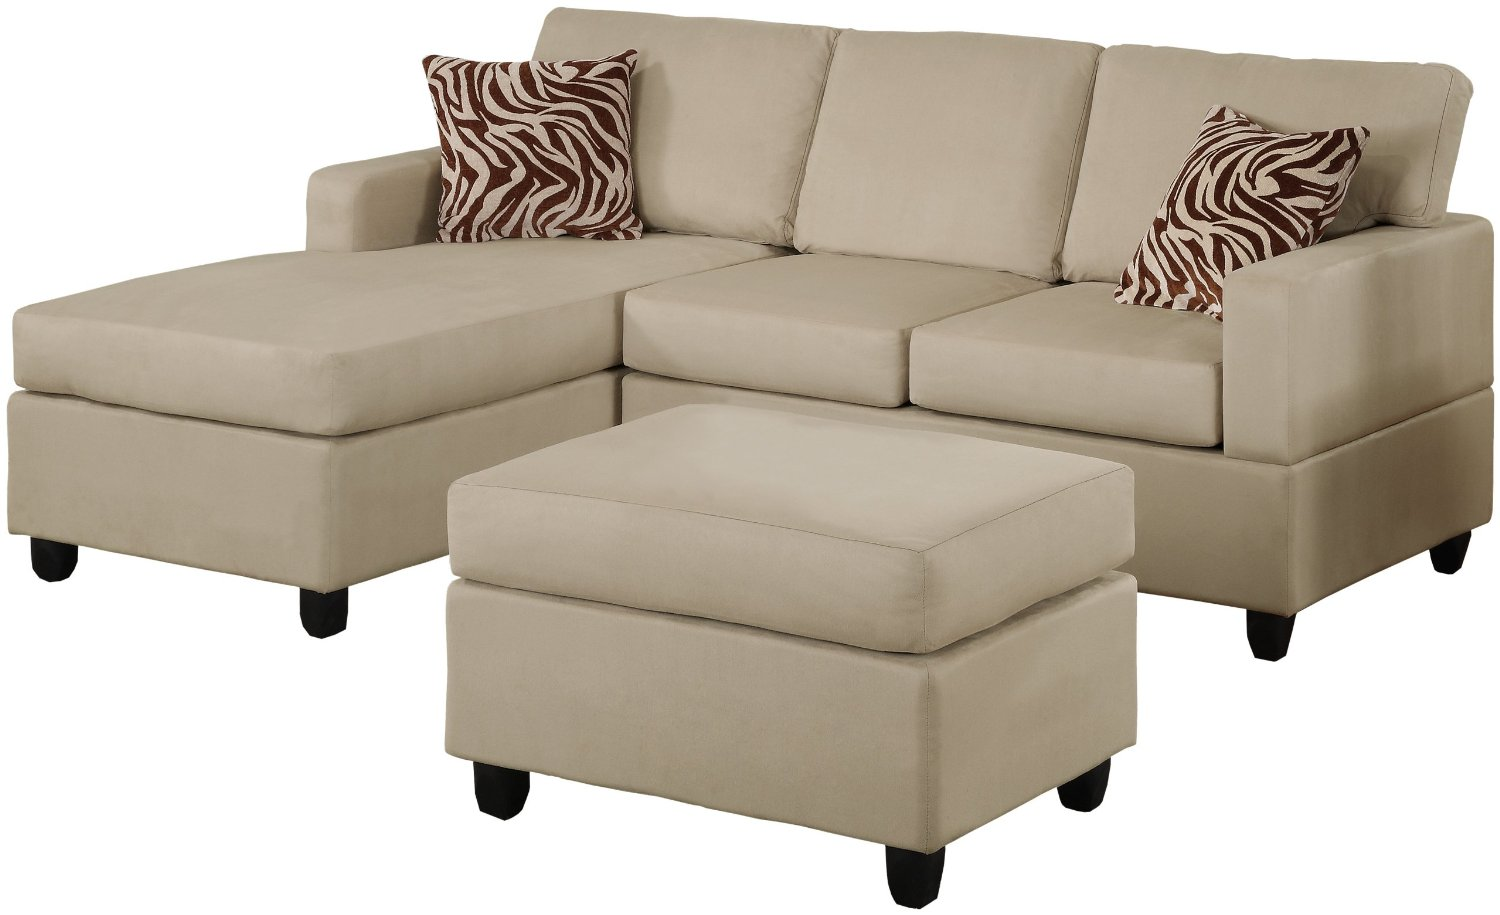 Cute Cheapest Couches Available Online Couch Amp Sofa